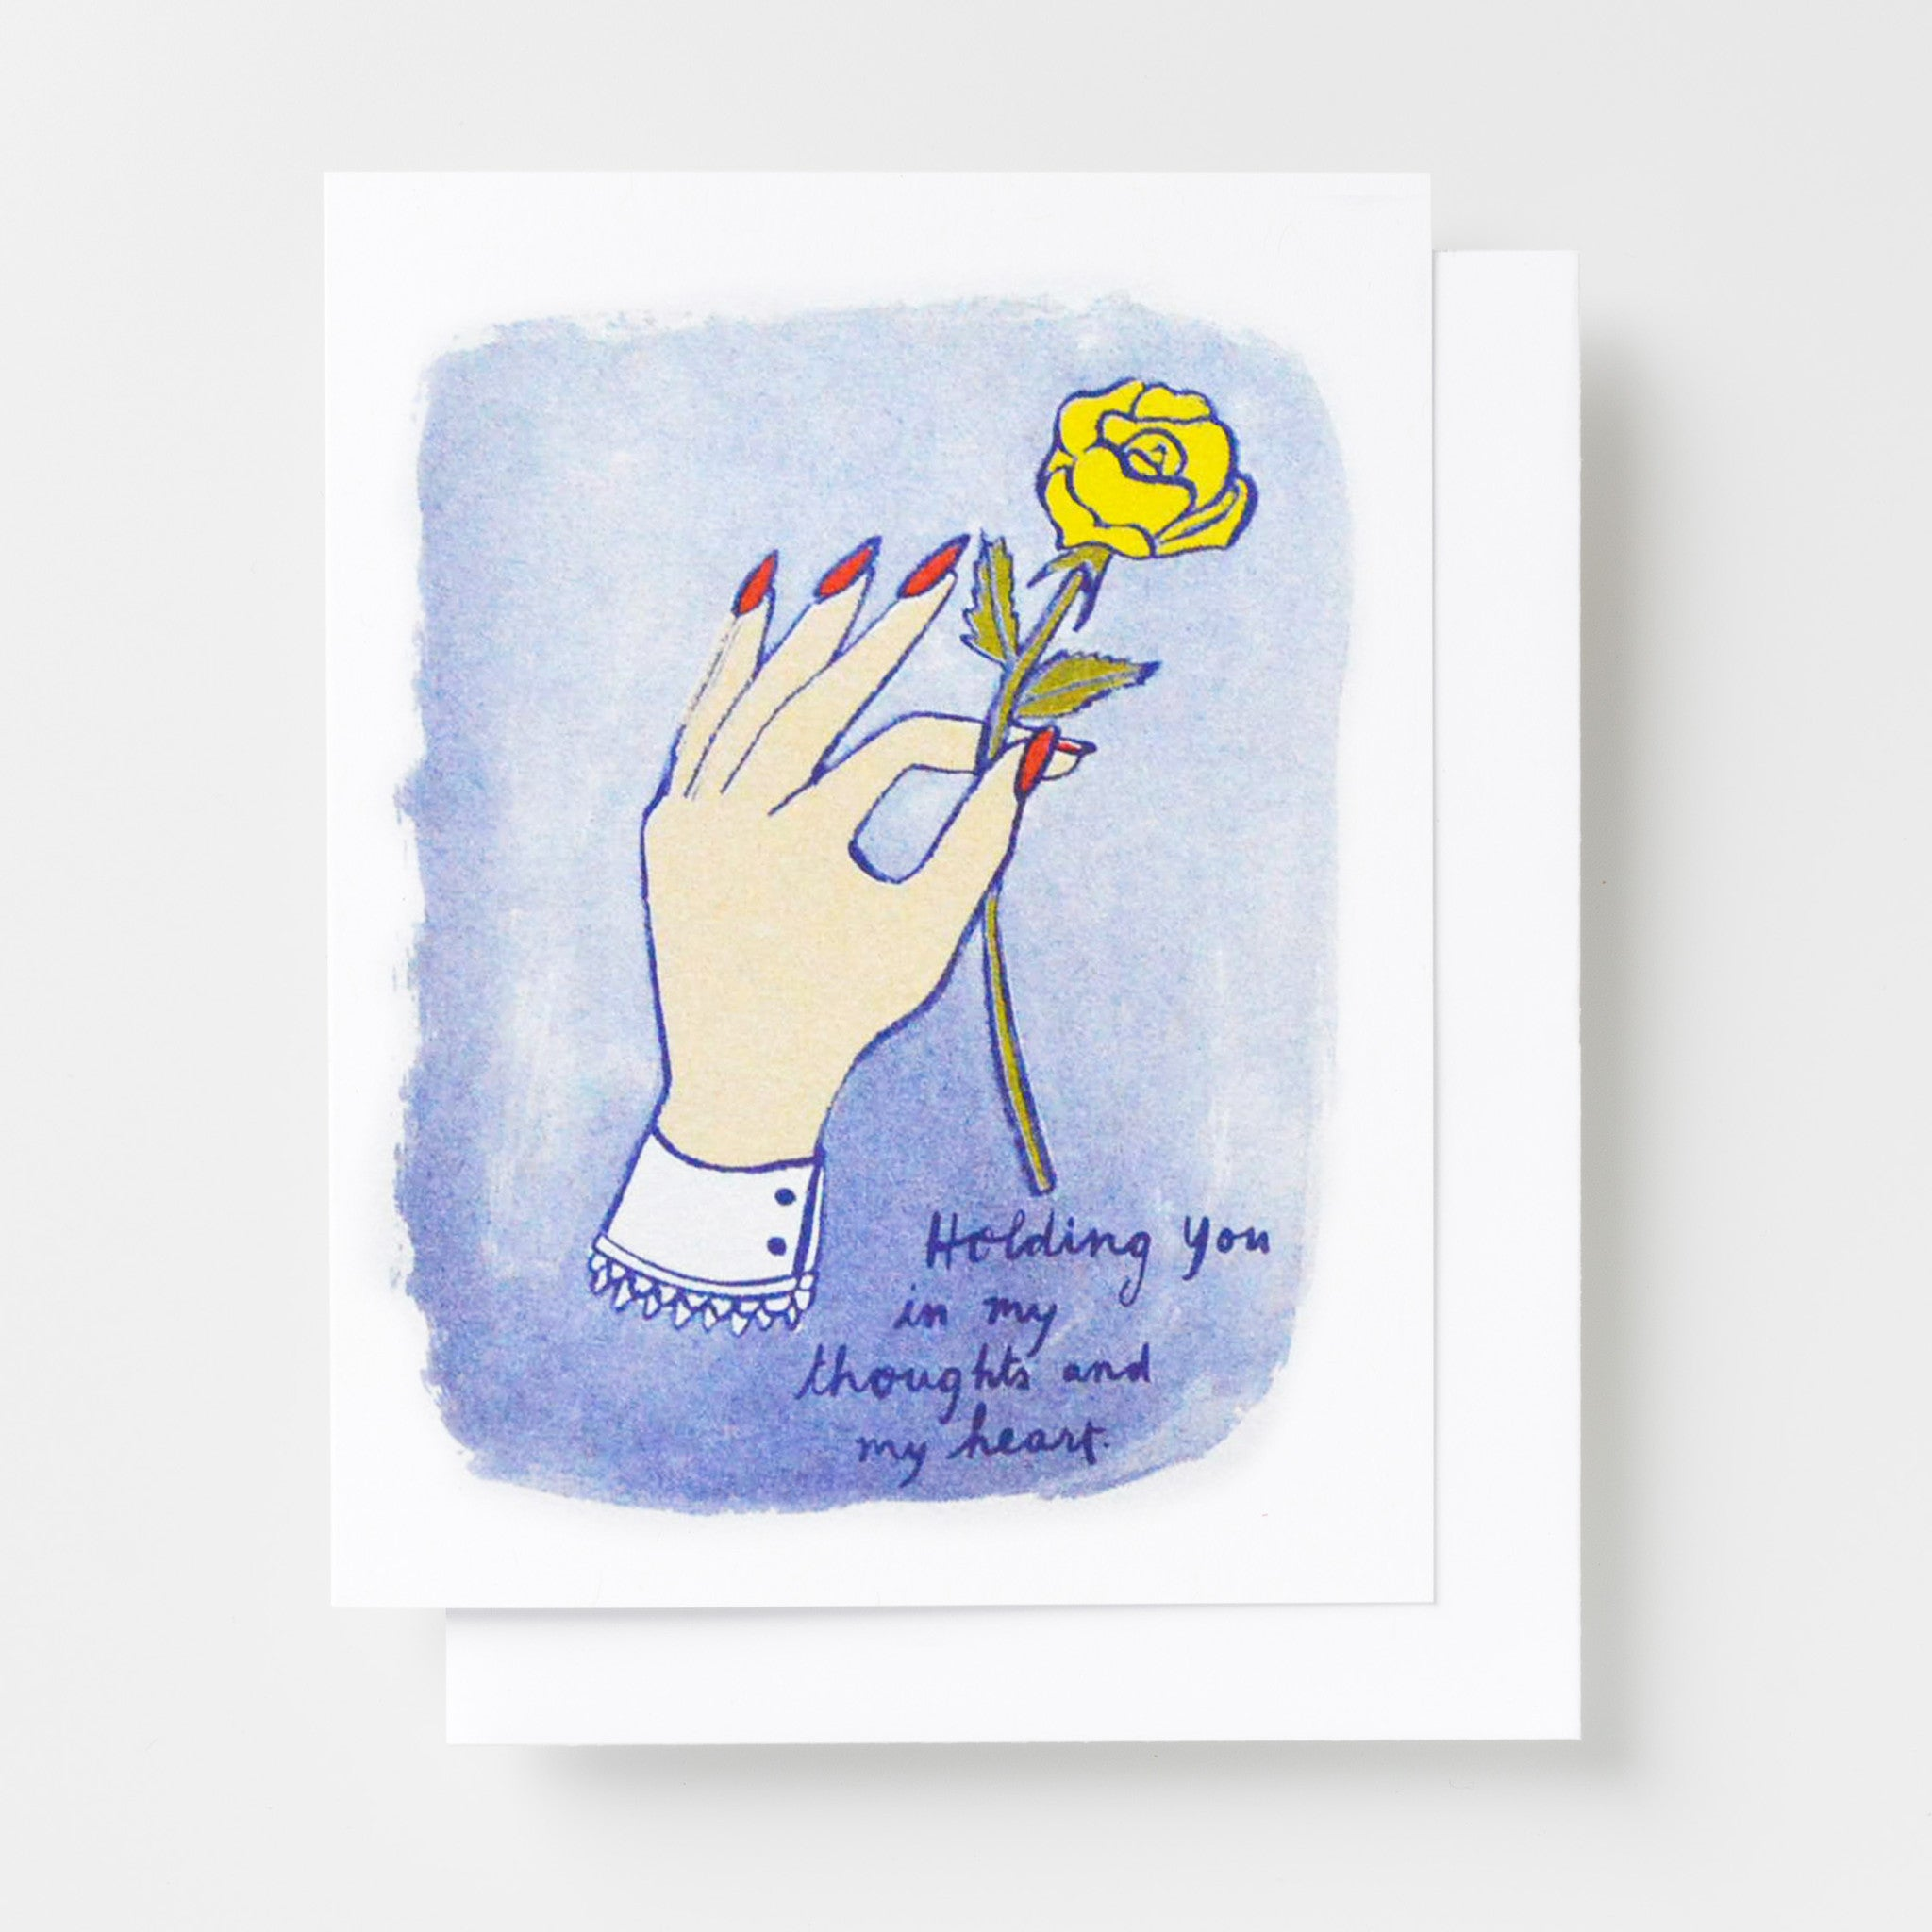 Holding you in my thoughts risograph sympathy card featuring a hand holding a yellow rose